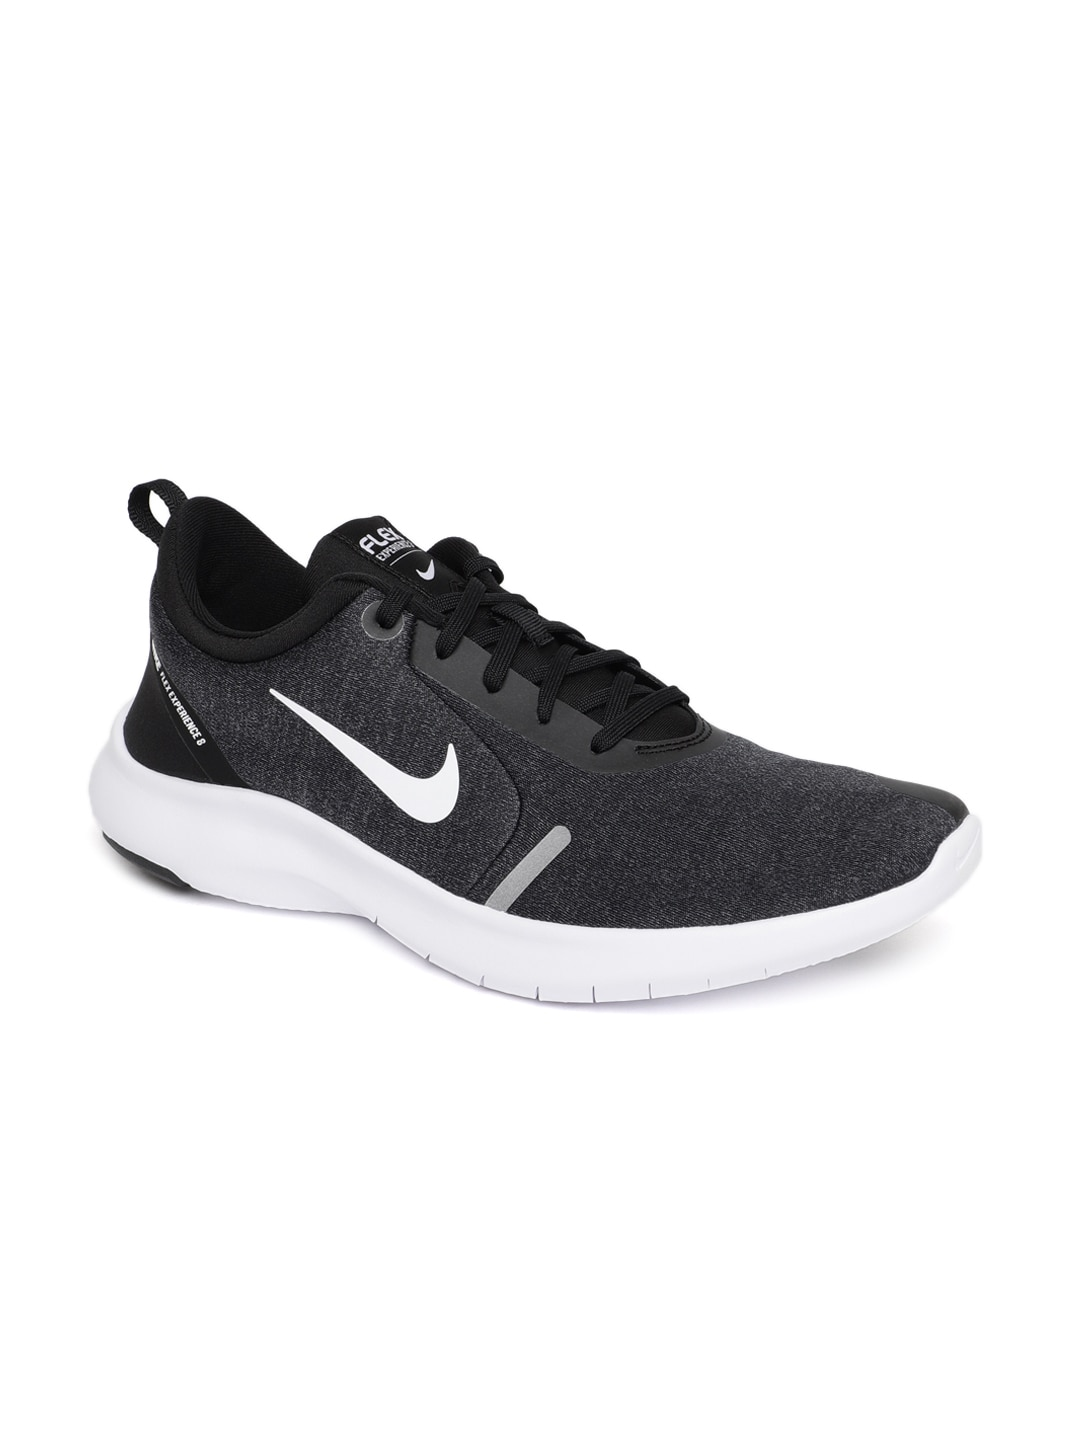 f9c7022768915 Nike Running Shoes - Buy Nike Running Shoes Online